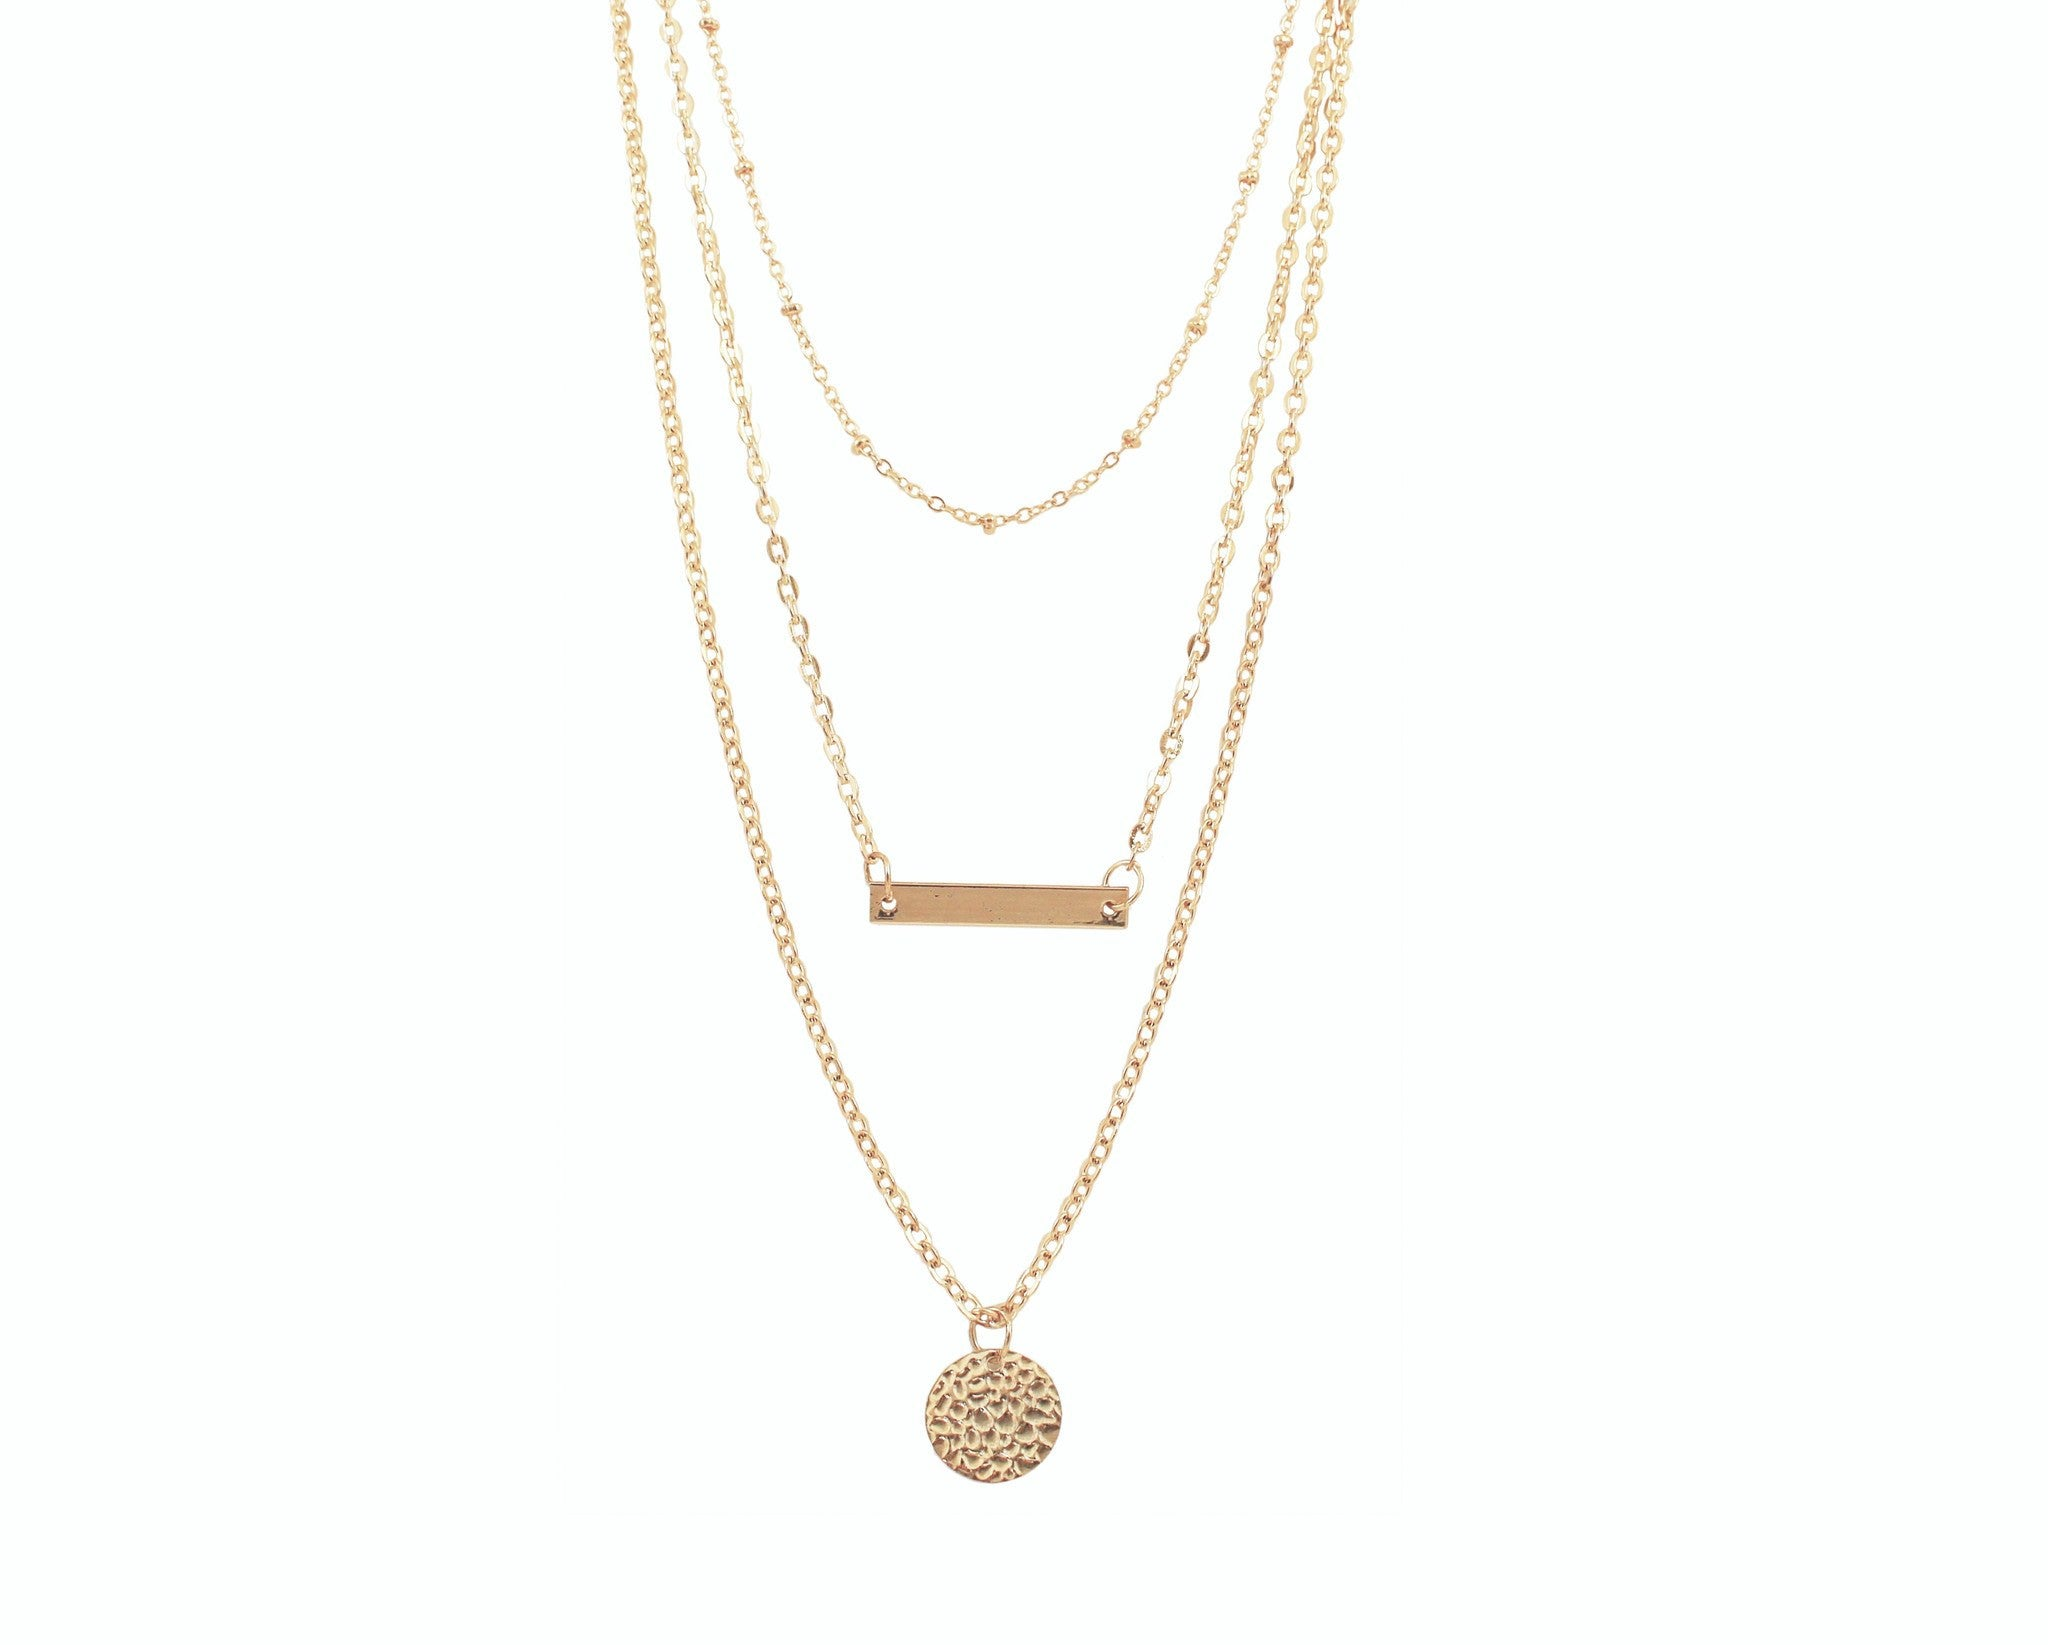 designs necklace gold in grams detail new alibaba design com product long buy on